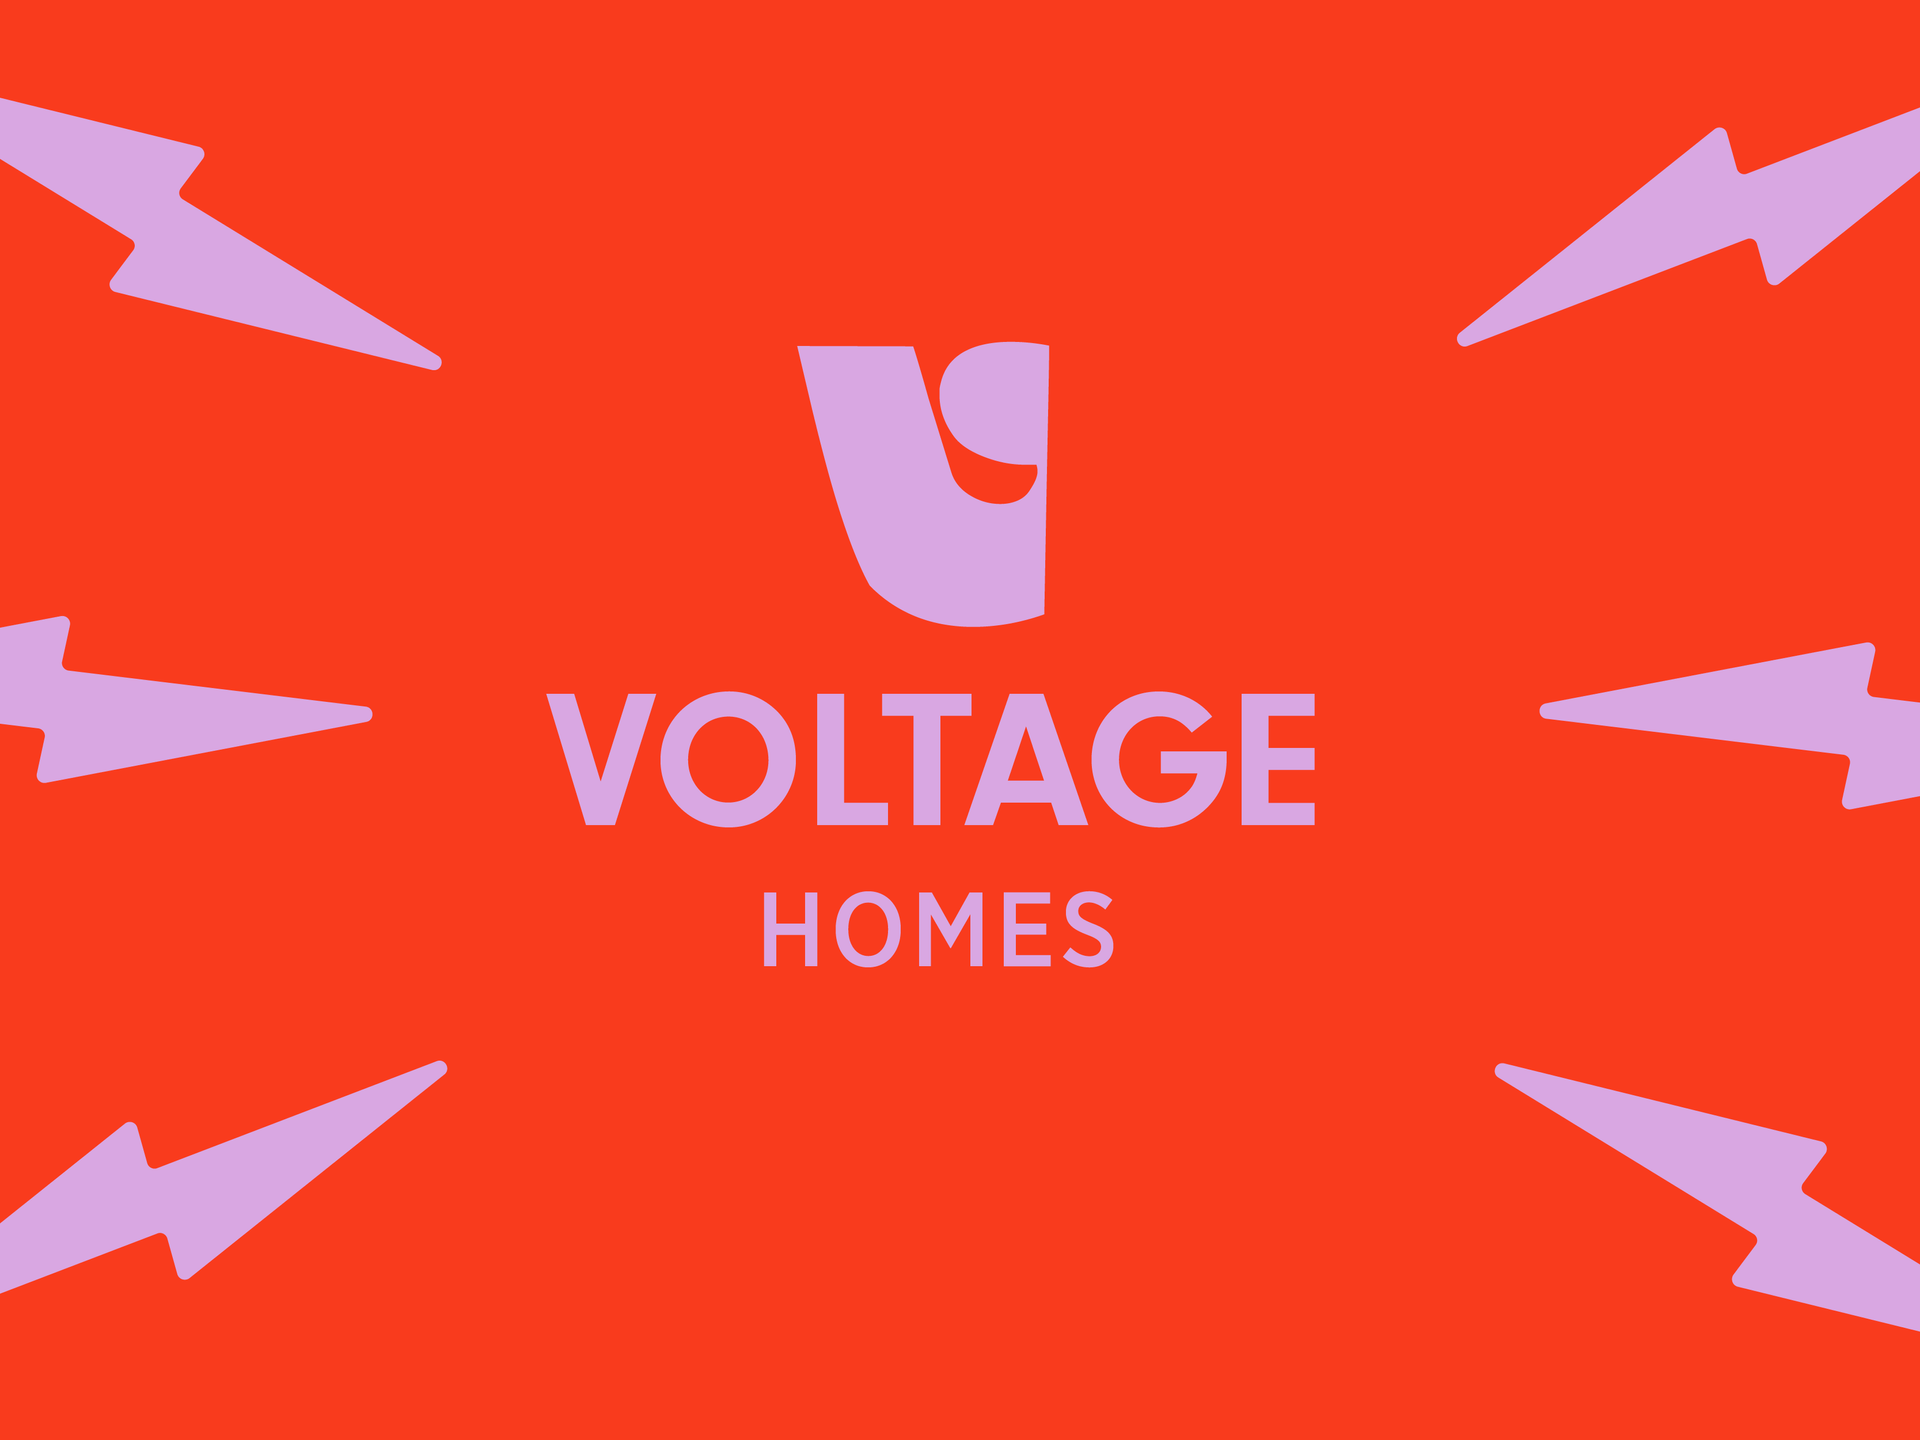 voltage_homes_brand-02.png